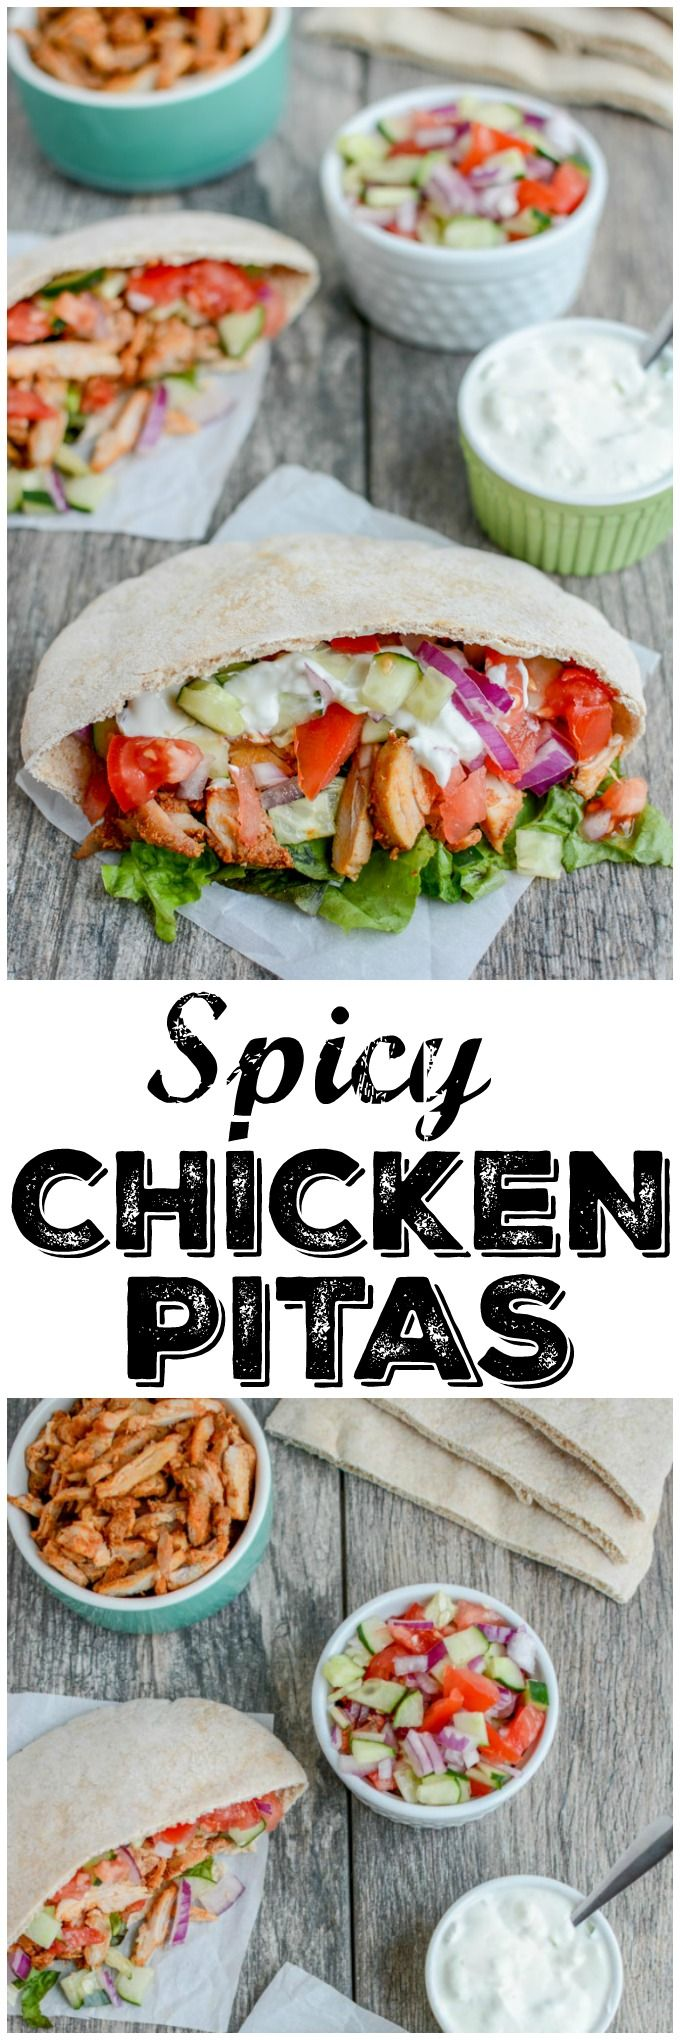 These Spicy Chicken Pitas are made with boneless, skinless chicken thighs and you can prep all the components ahead of time and assemble them quickly for a healthy lunch or dinner.